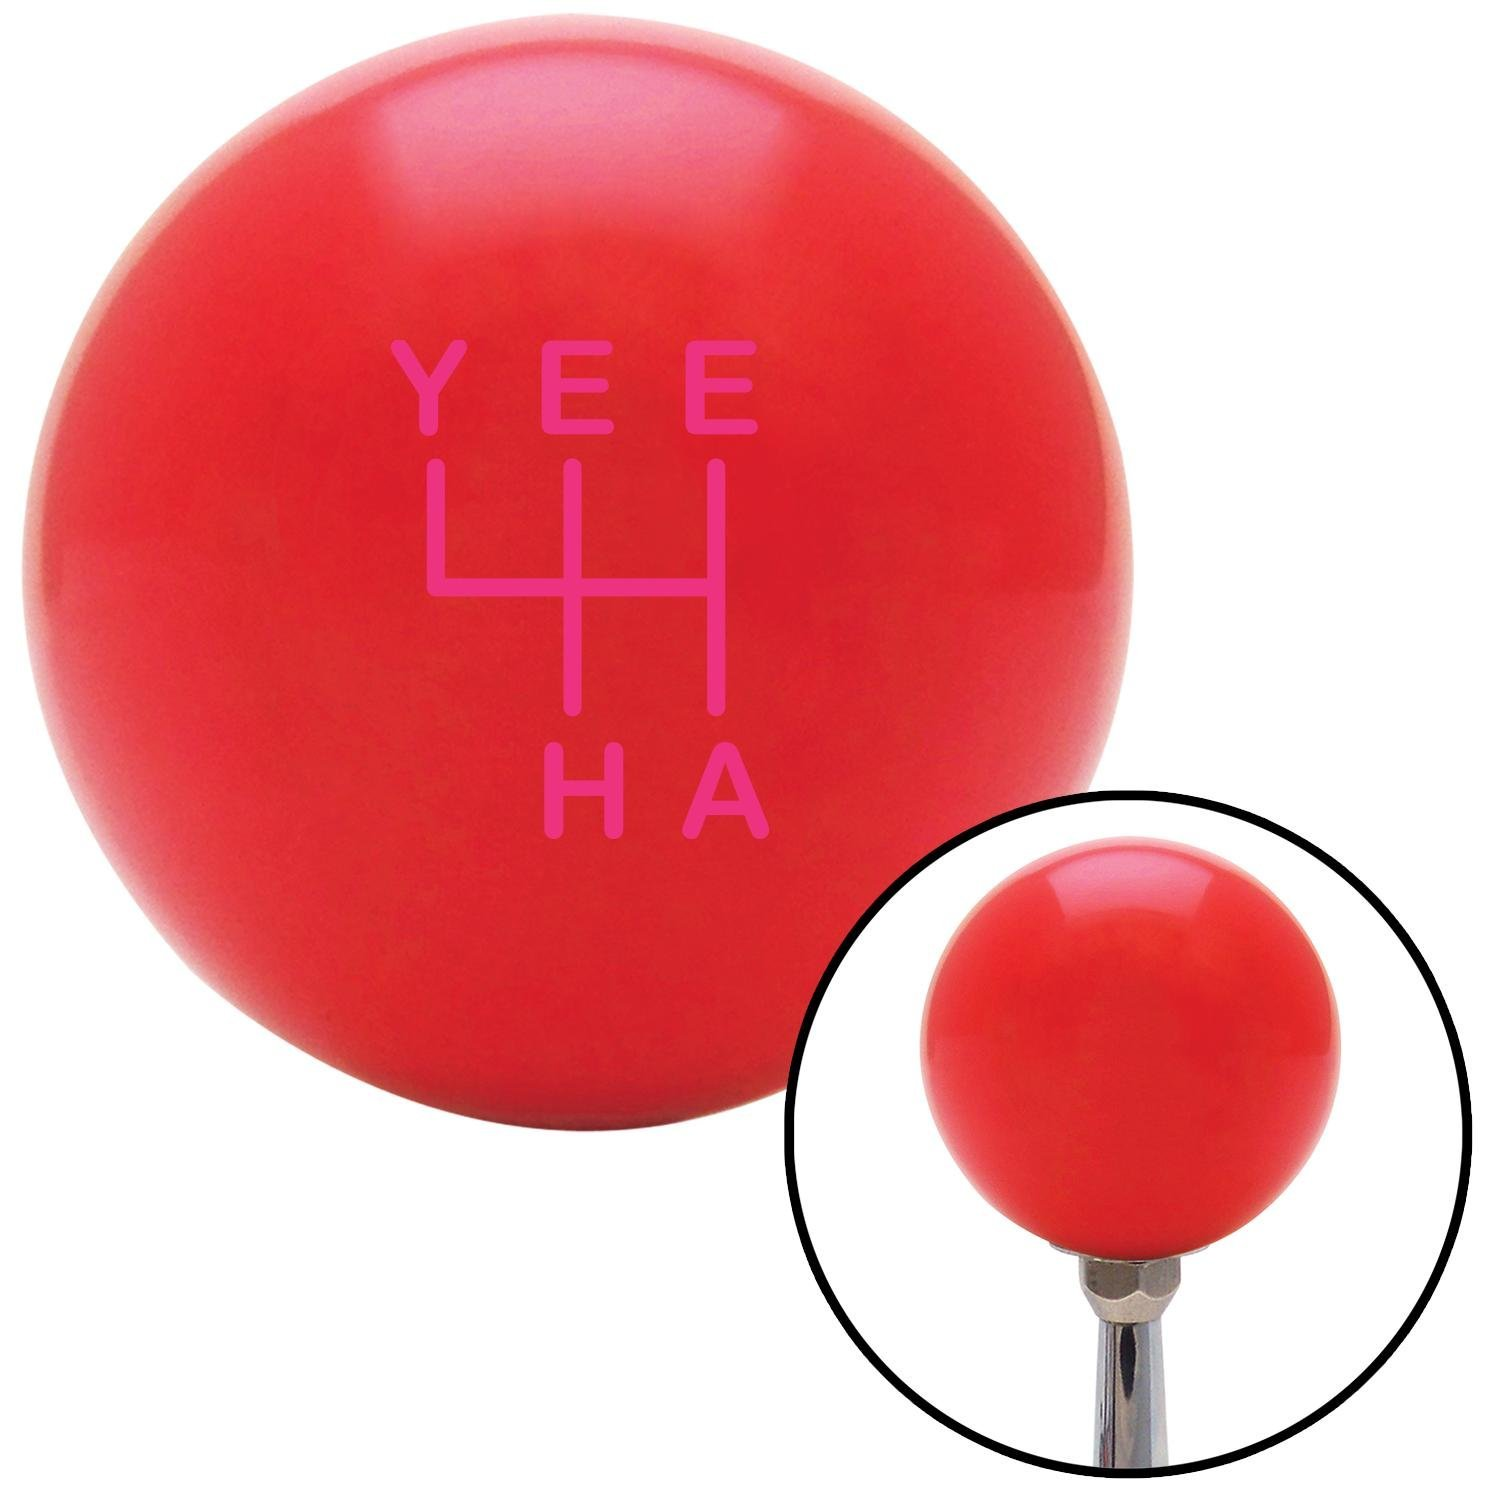 American Shifter 301356 Shift Knob Pink YeeHa 4 Speed Red with M16 x 1.5 Insert